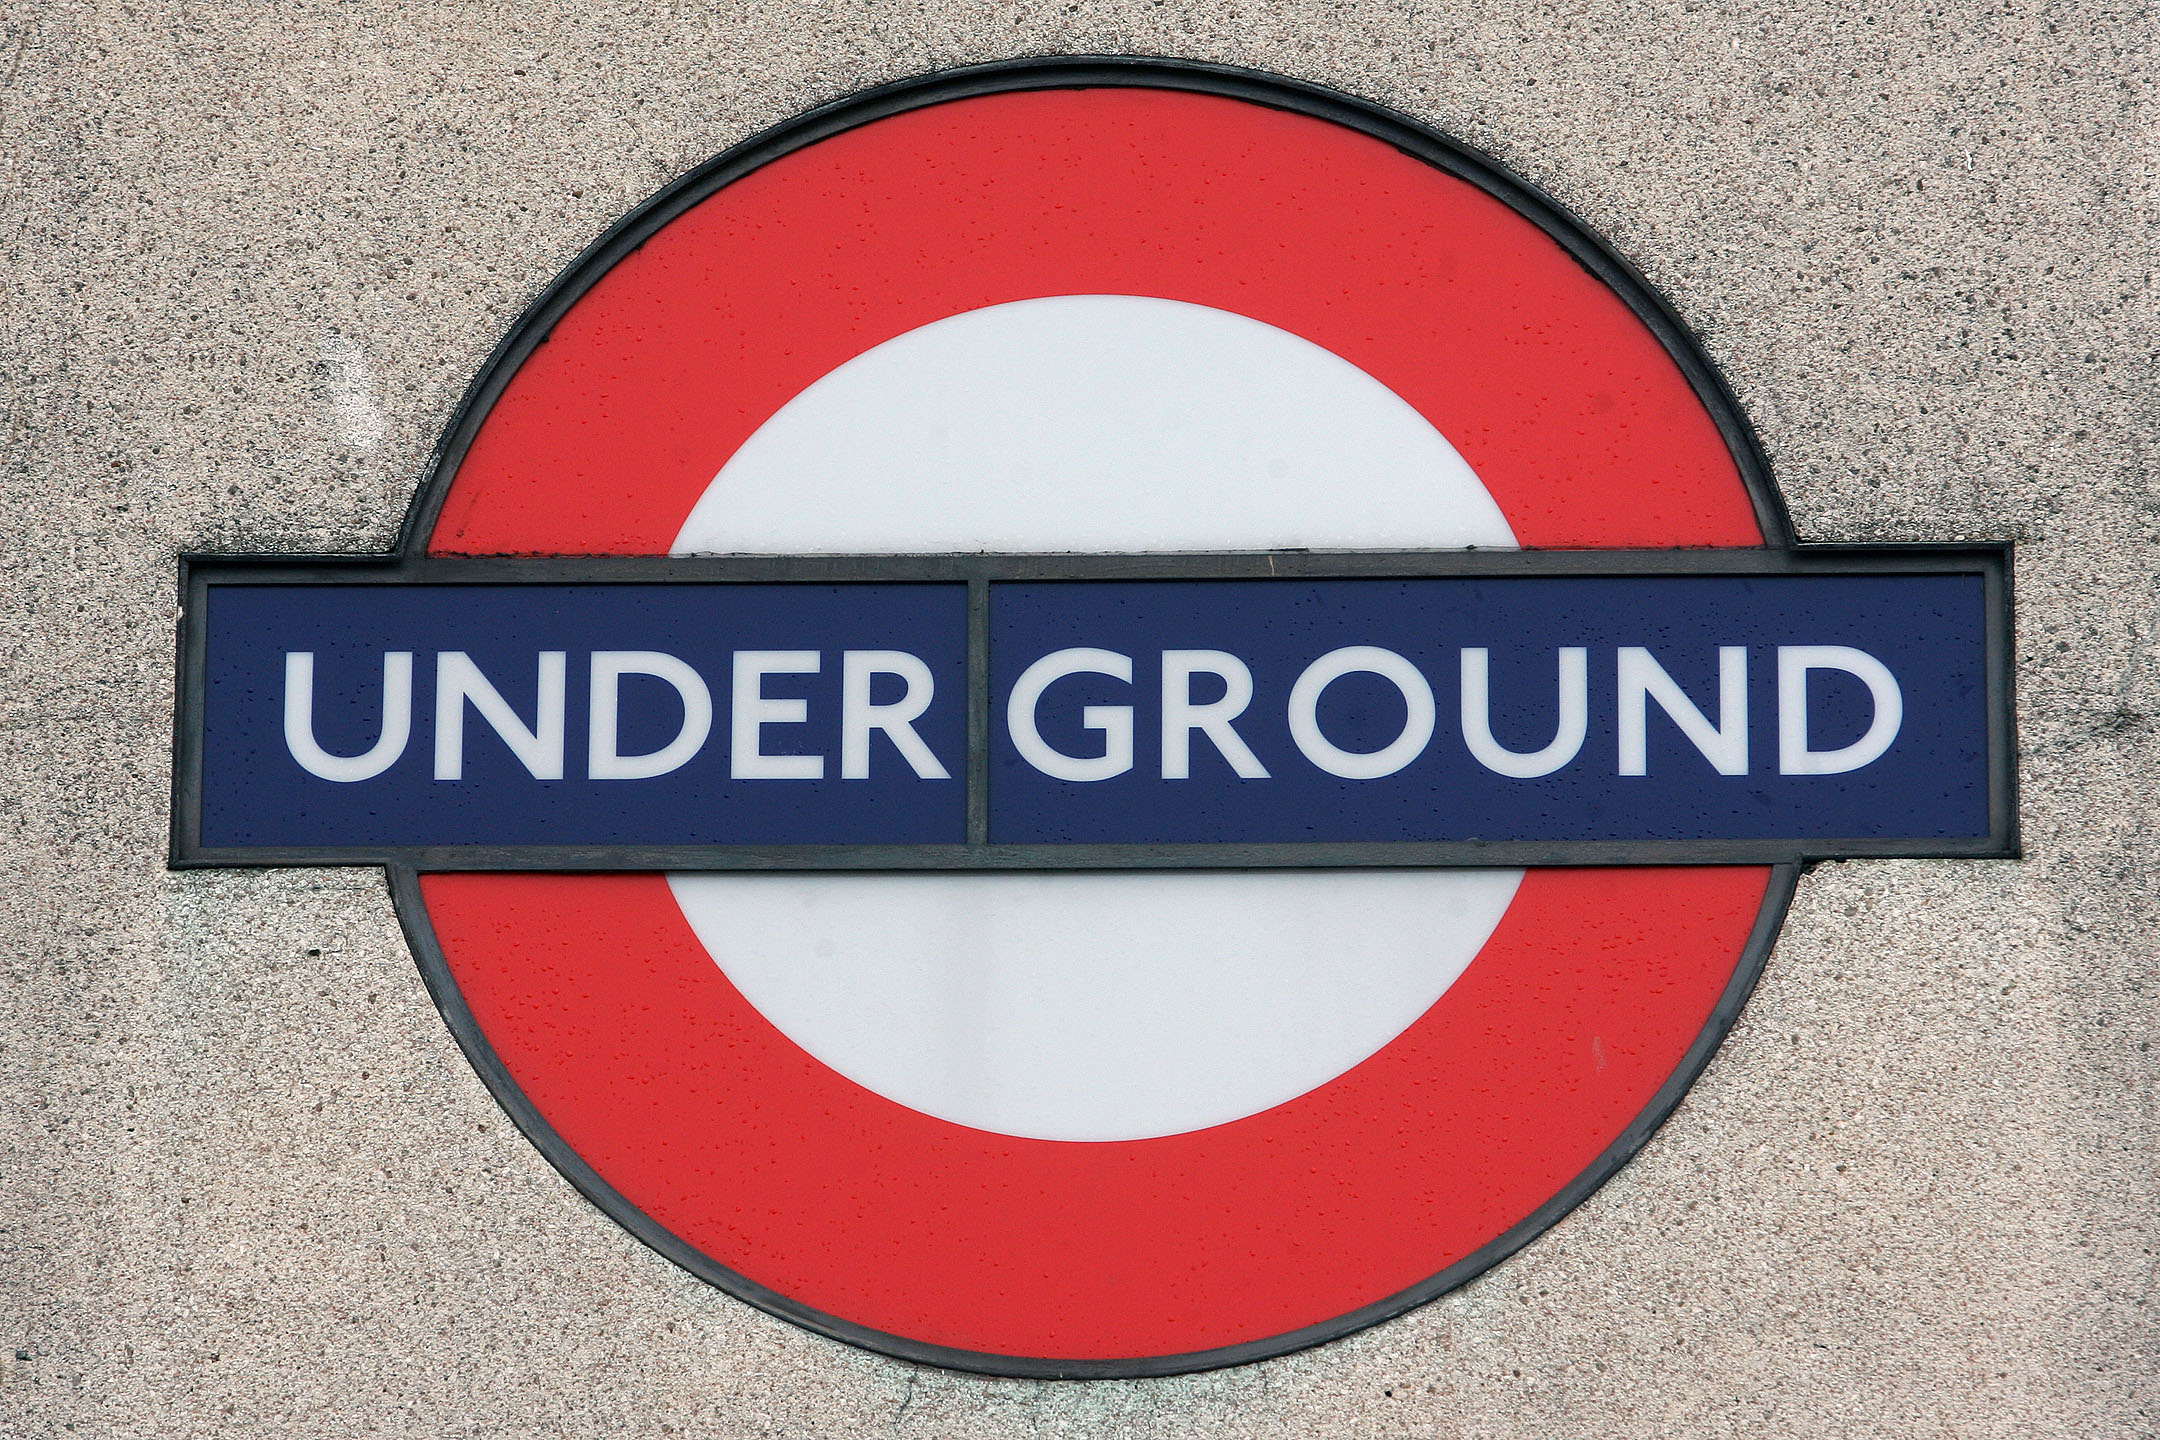 Tube services will be affected if the strike goes ahead on Monday